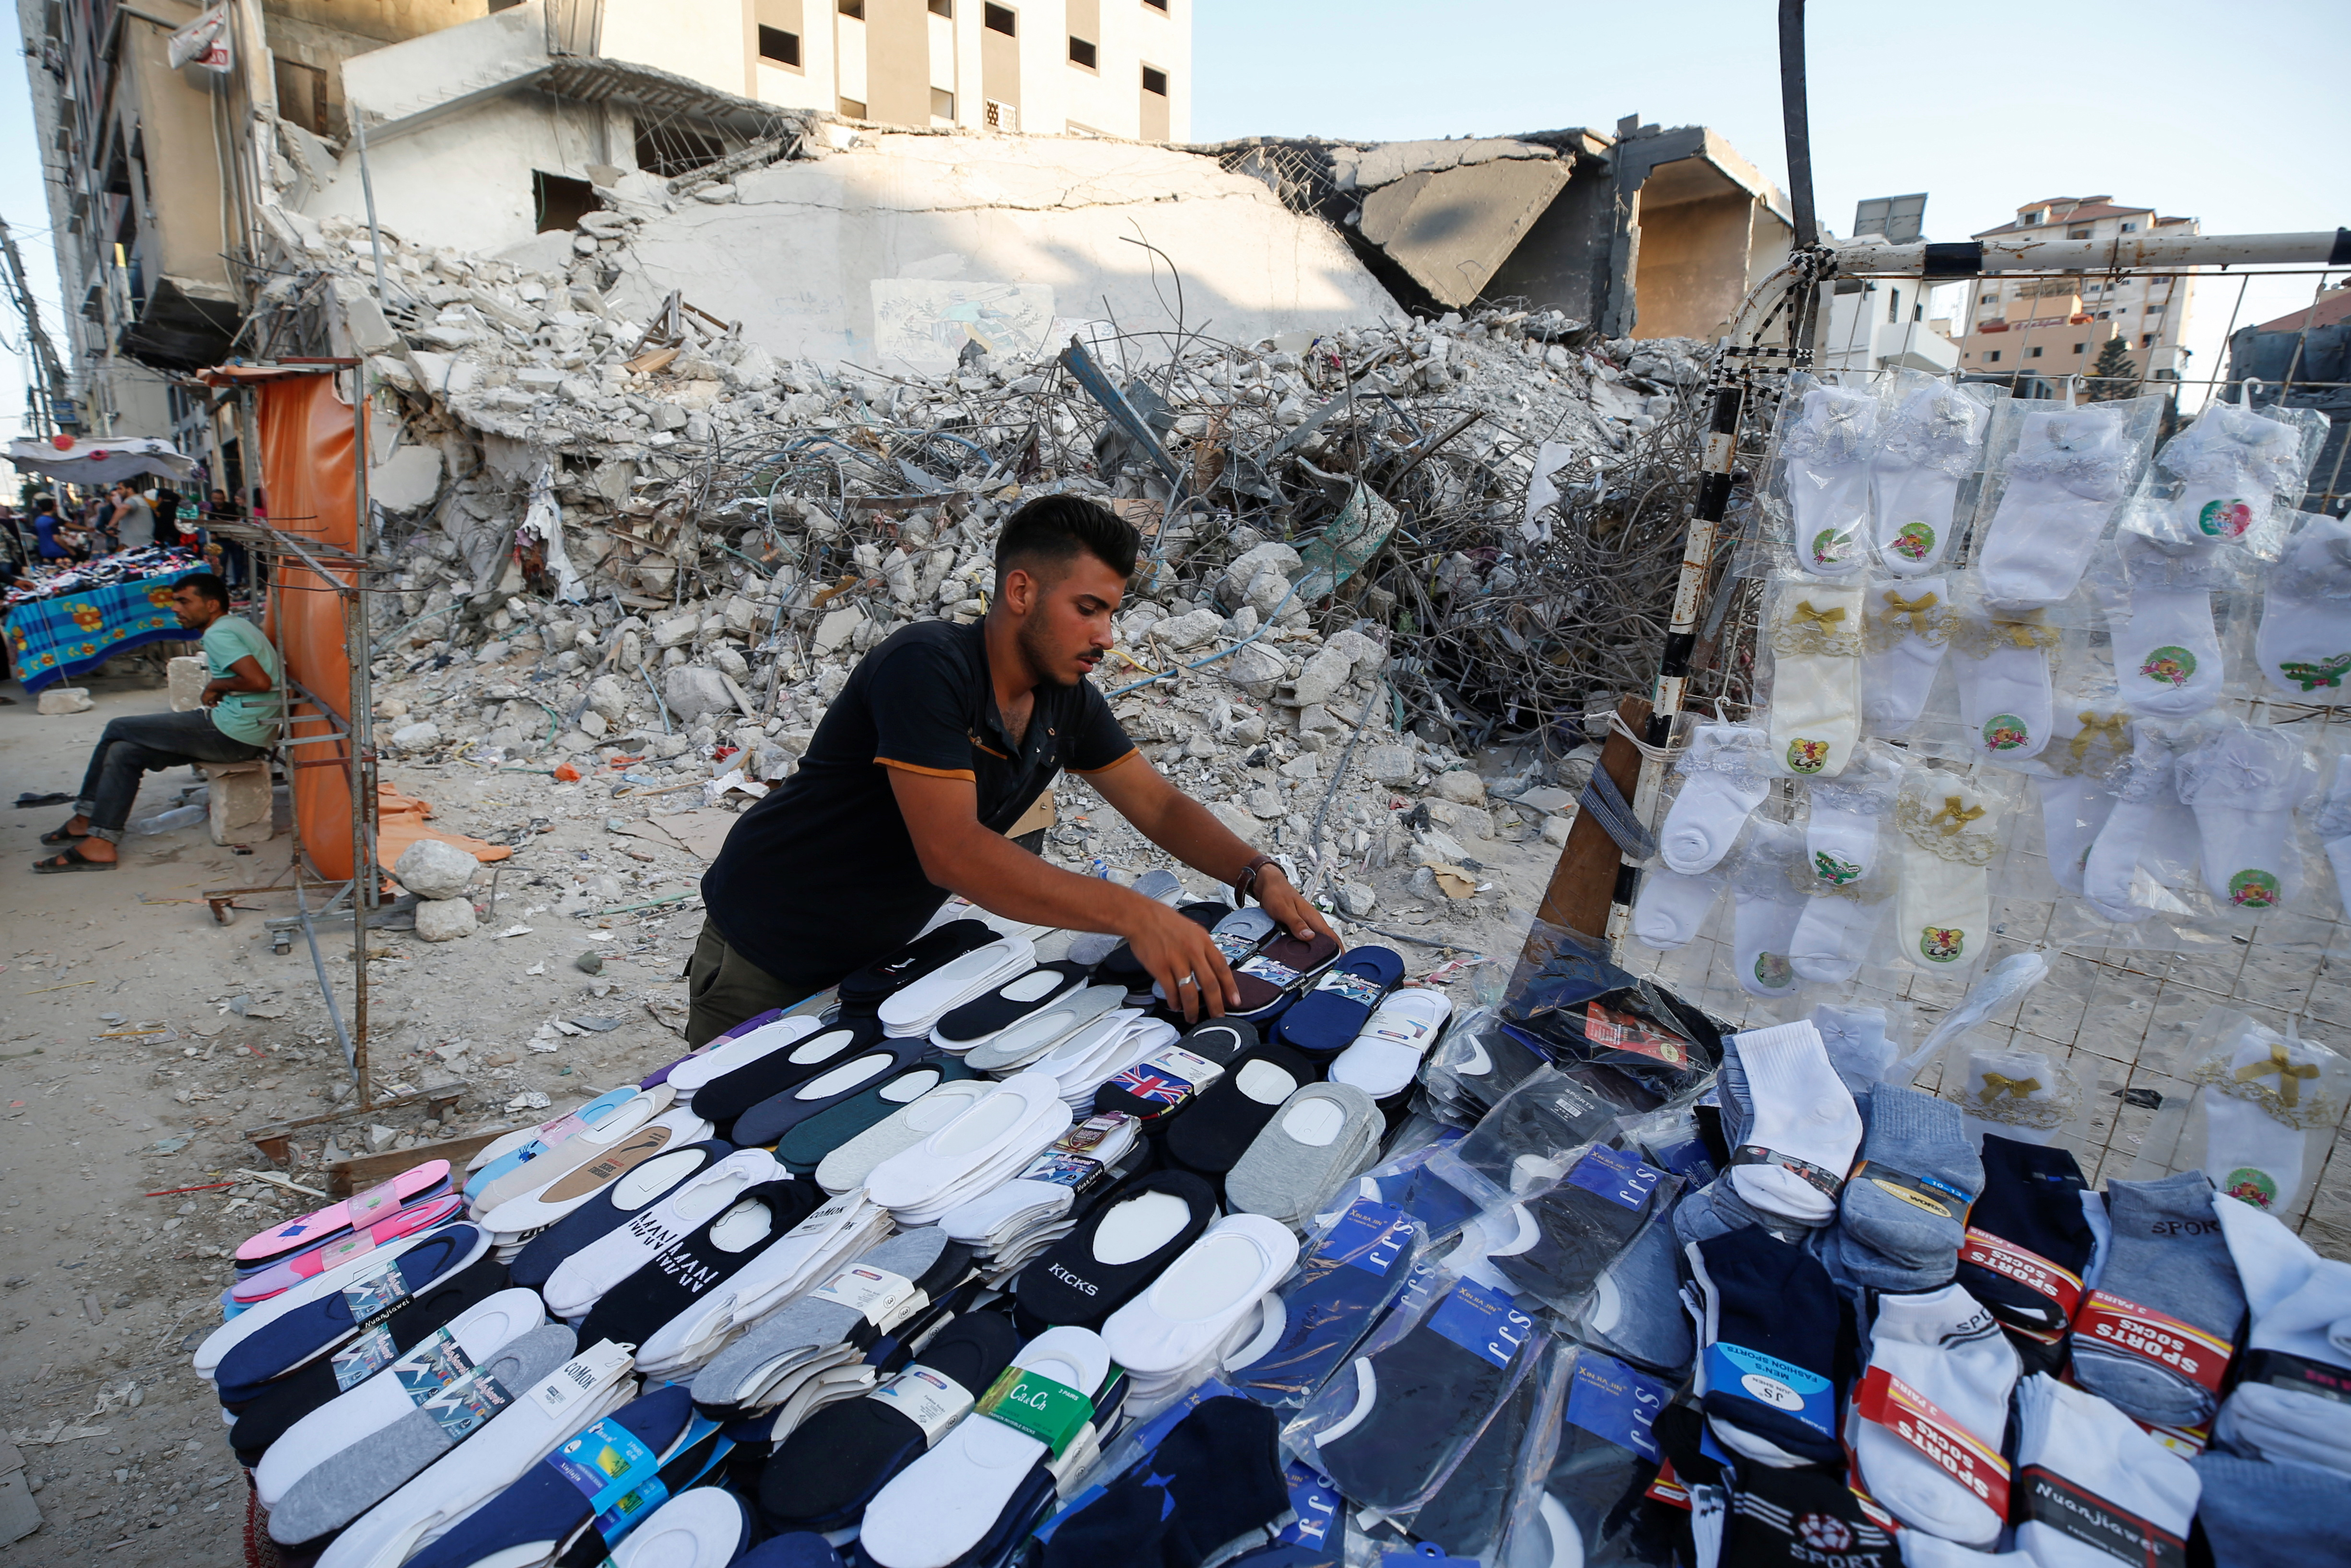 A Palestinian sells socks on a stall near the rubble of his old store that has been destroyed in an Israeli air strike, ahead of Eid Al-Adha Muslim holiday, in Gaza City, July 14, 2021. Picture taken July 14, 2021. REUTERS/Mohammed Salem